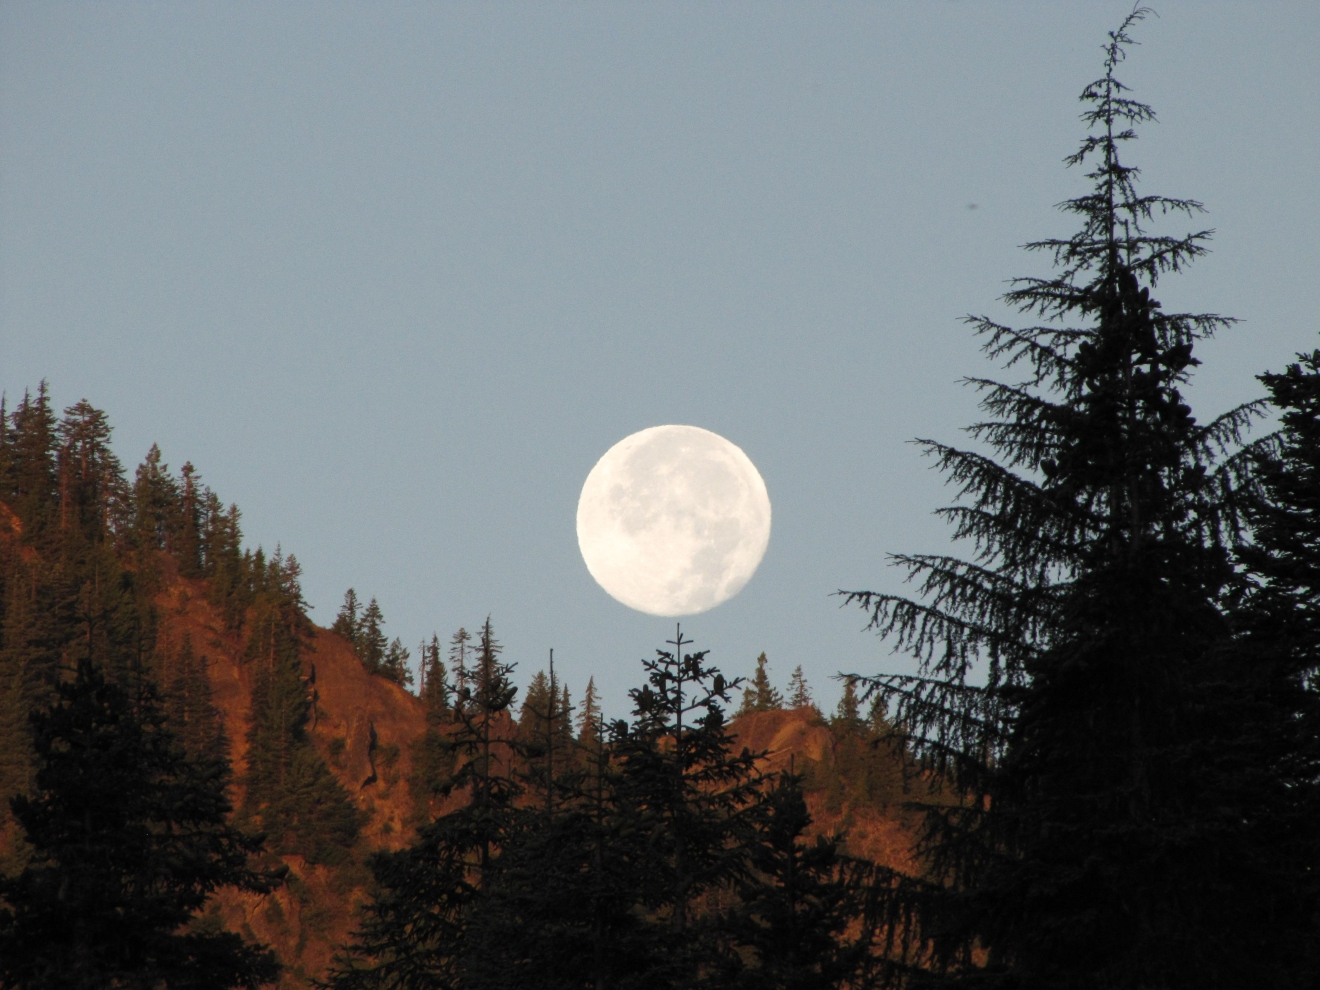 Moon over Elk Lake area of Breitenbush (Charles McConnell/CC by 2.0)